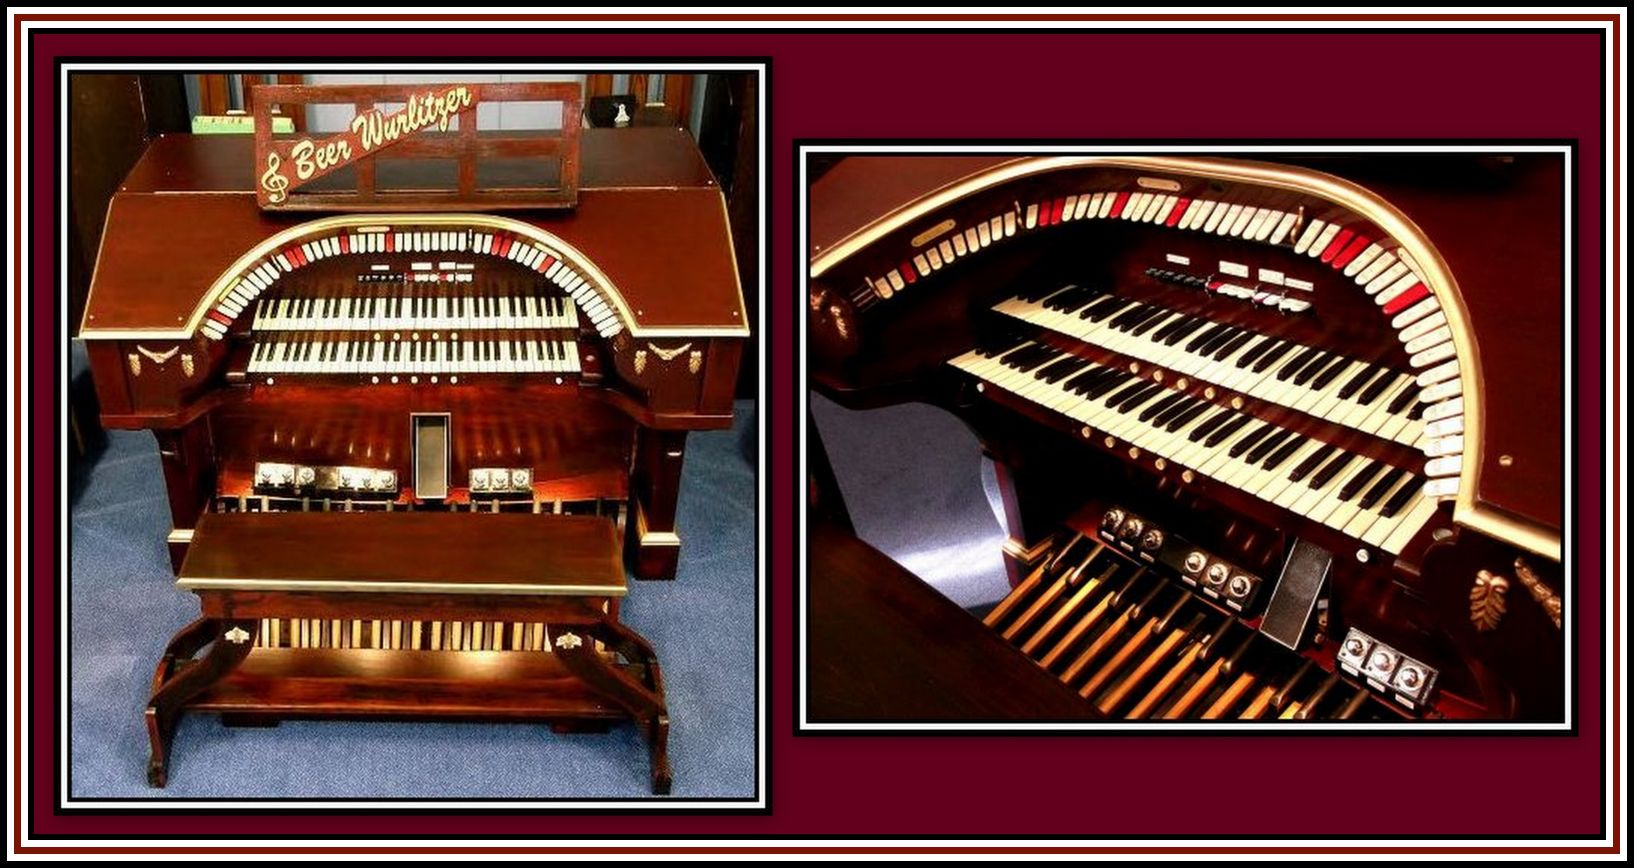 Beer Wurlitzer Collage